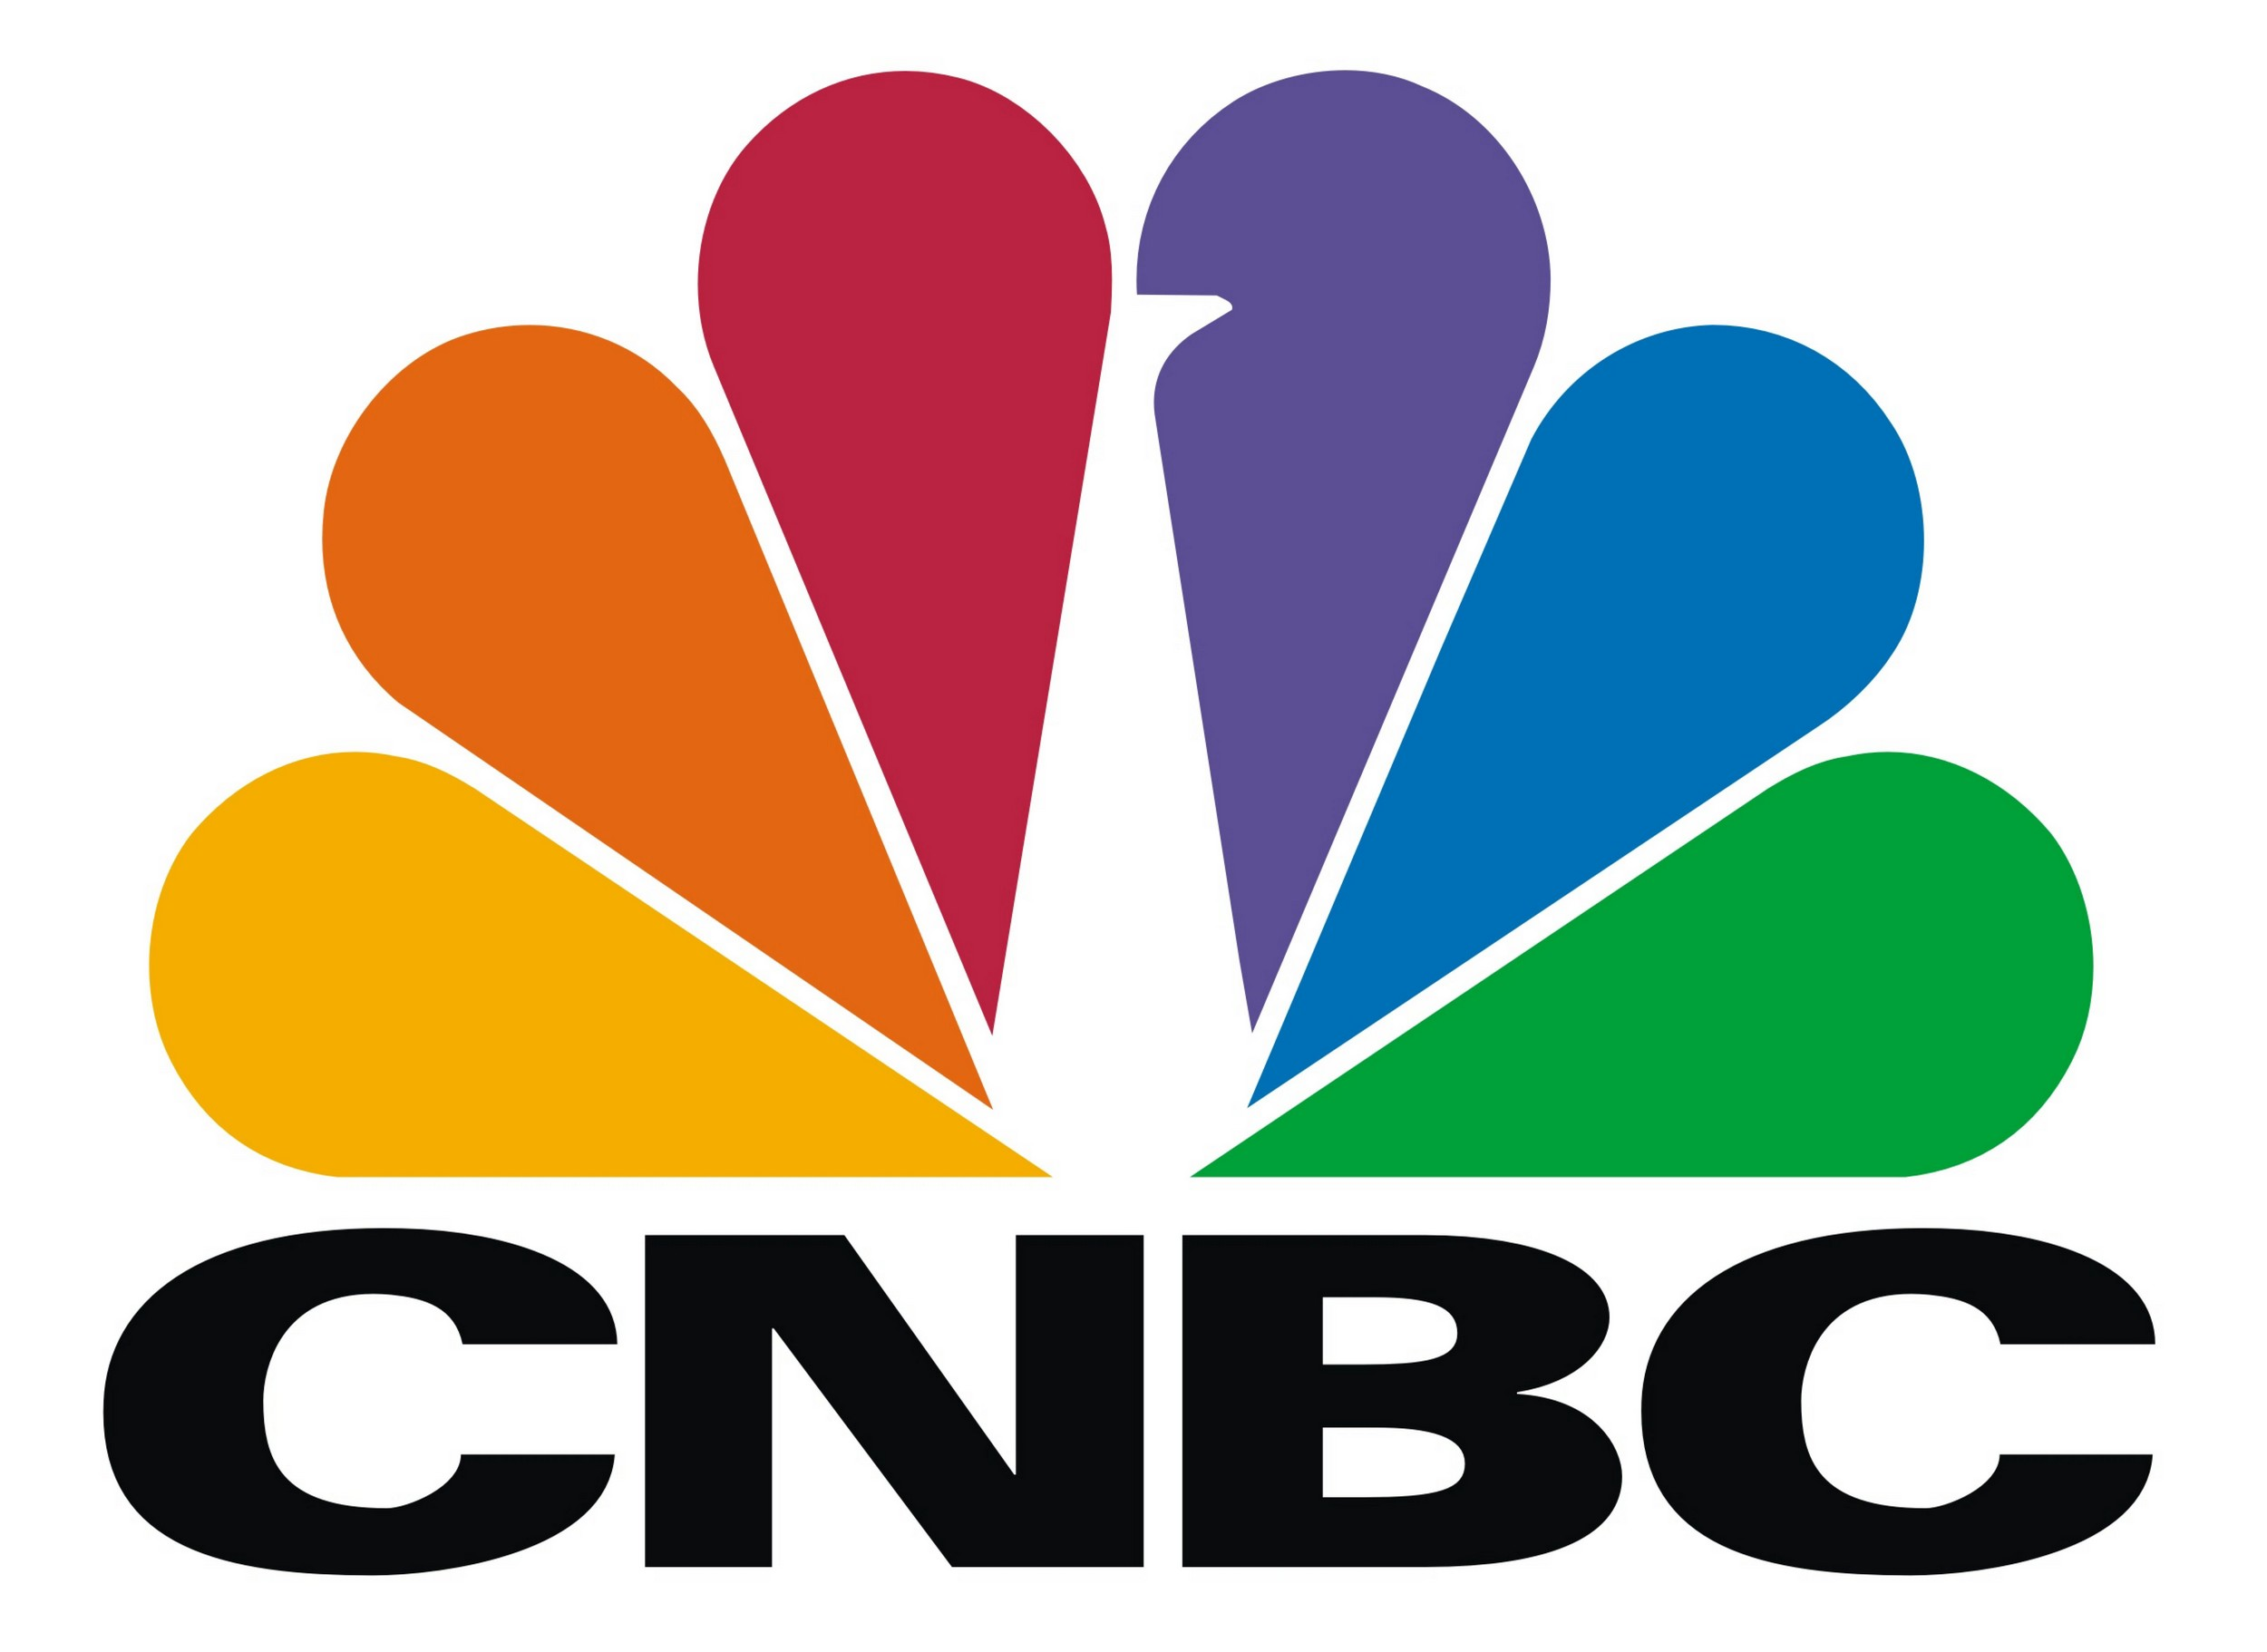 Cnbc logo press image 1458851025